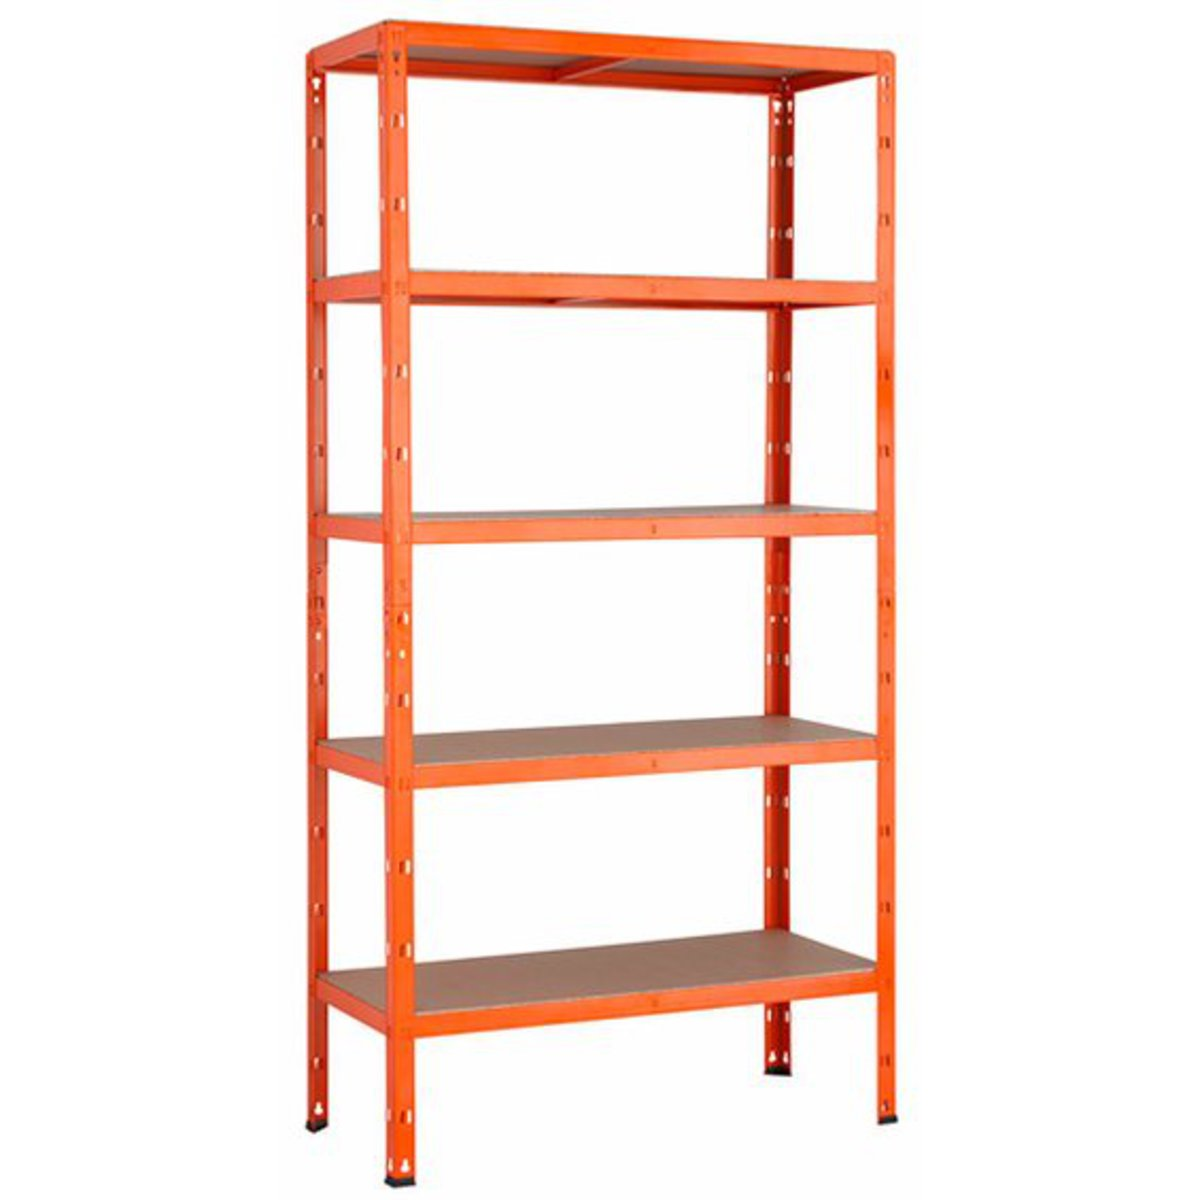 metall steckregal orange 180 cm x 90 cm x 40 cm von obi ansehen. Black Bedroom Furniture Sets. Home Design Ideas